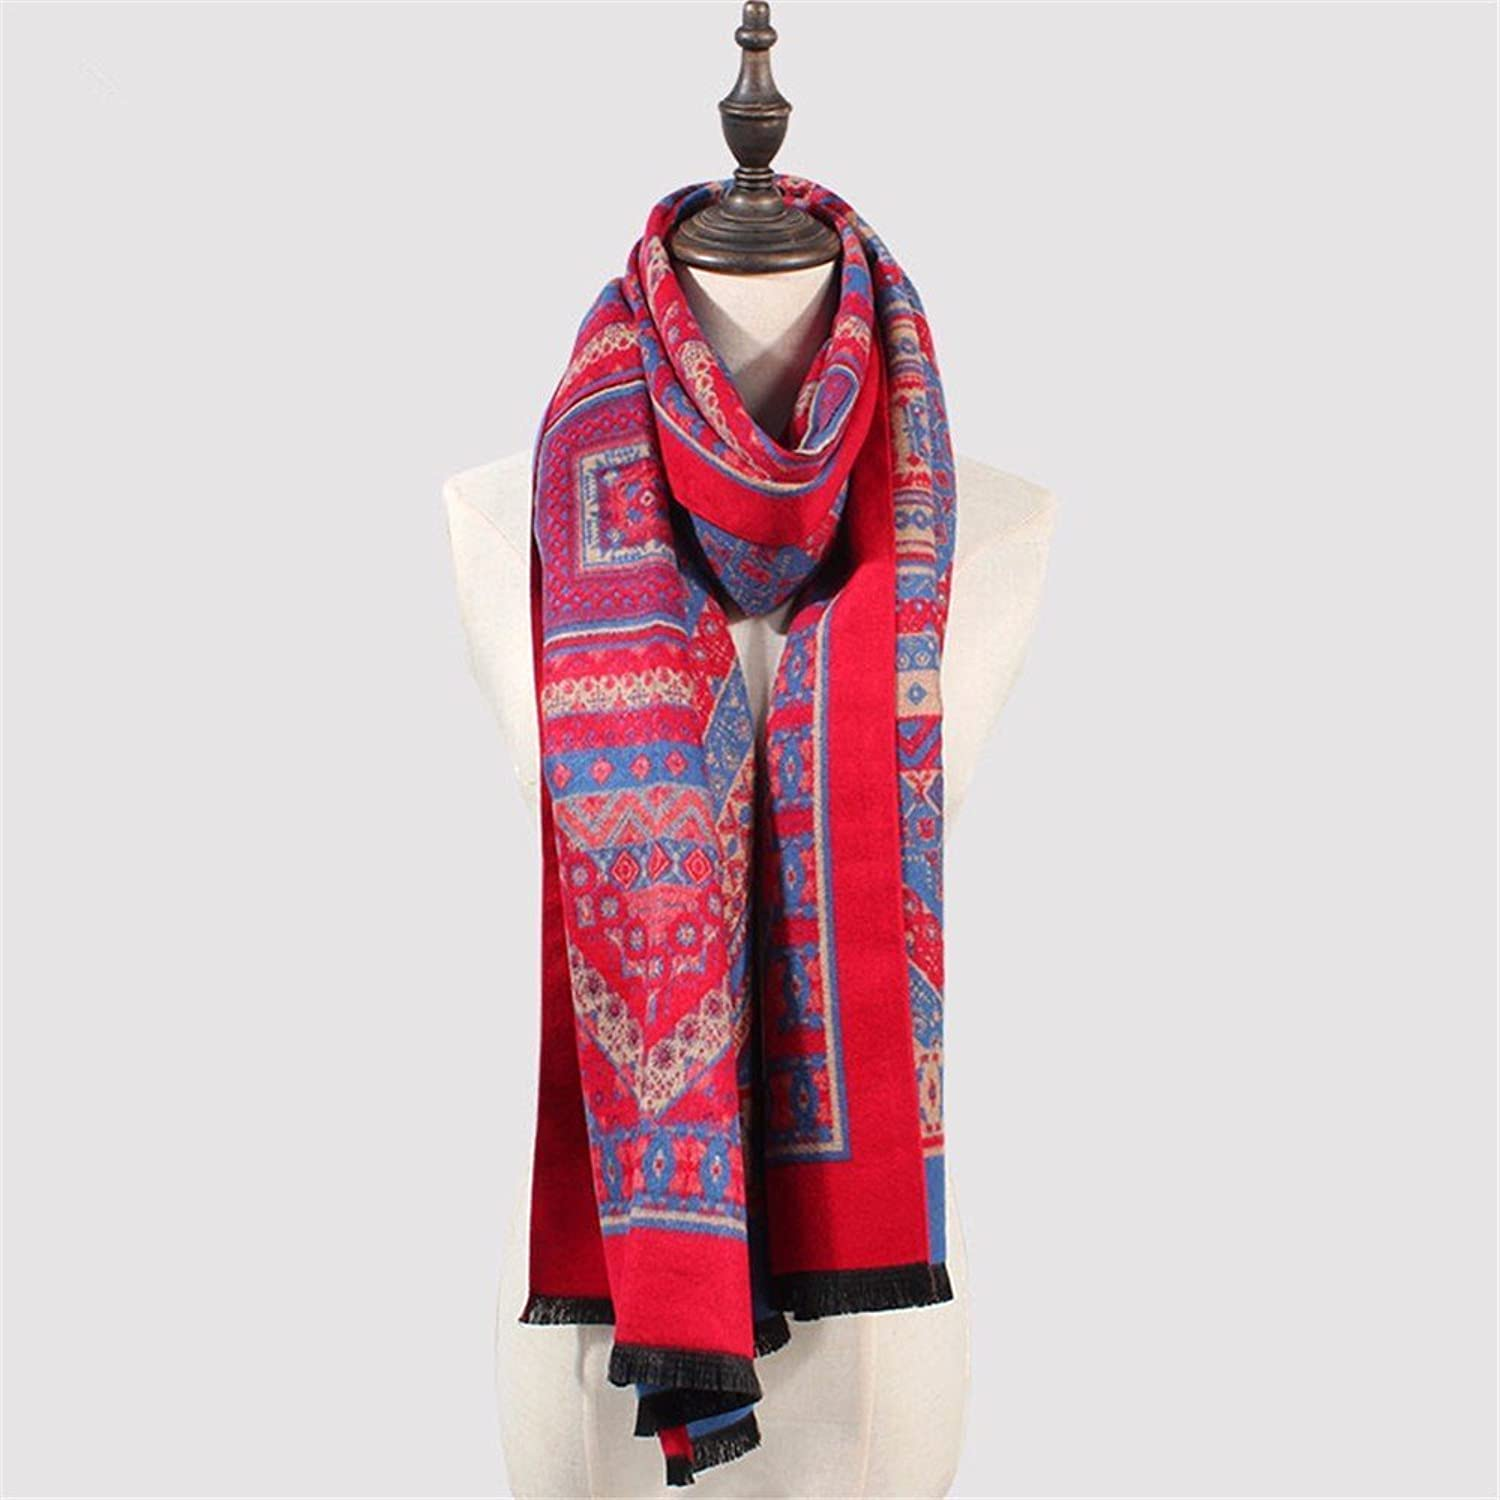 DIDIDD Scarfthickening autumn winter women warm cashmere scarves travel cloak